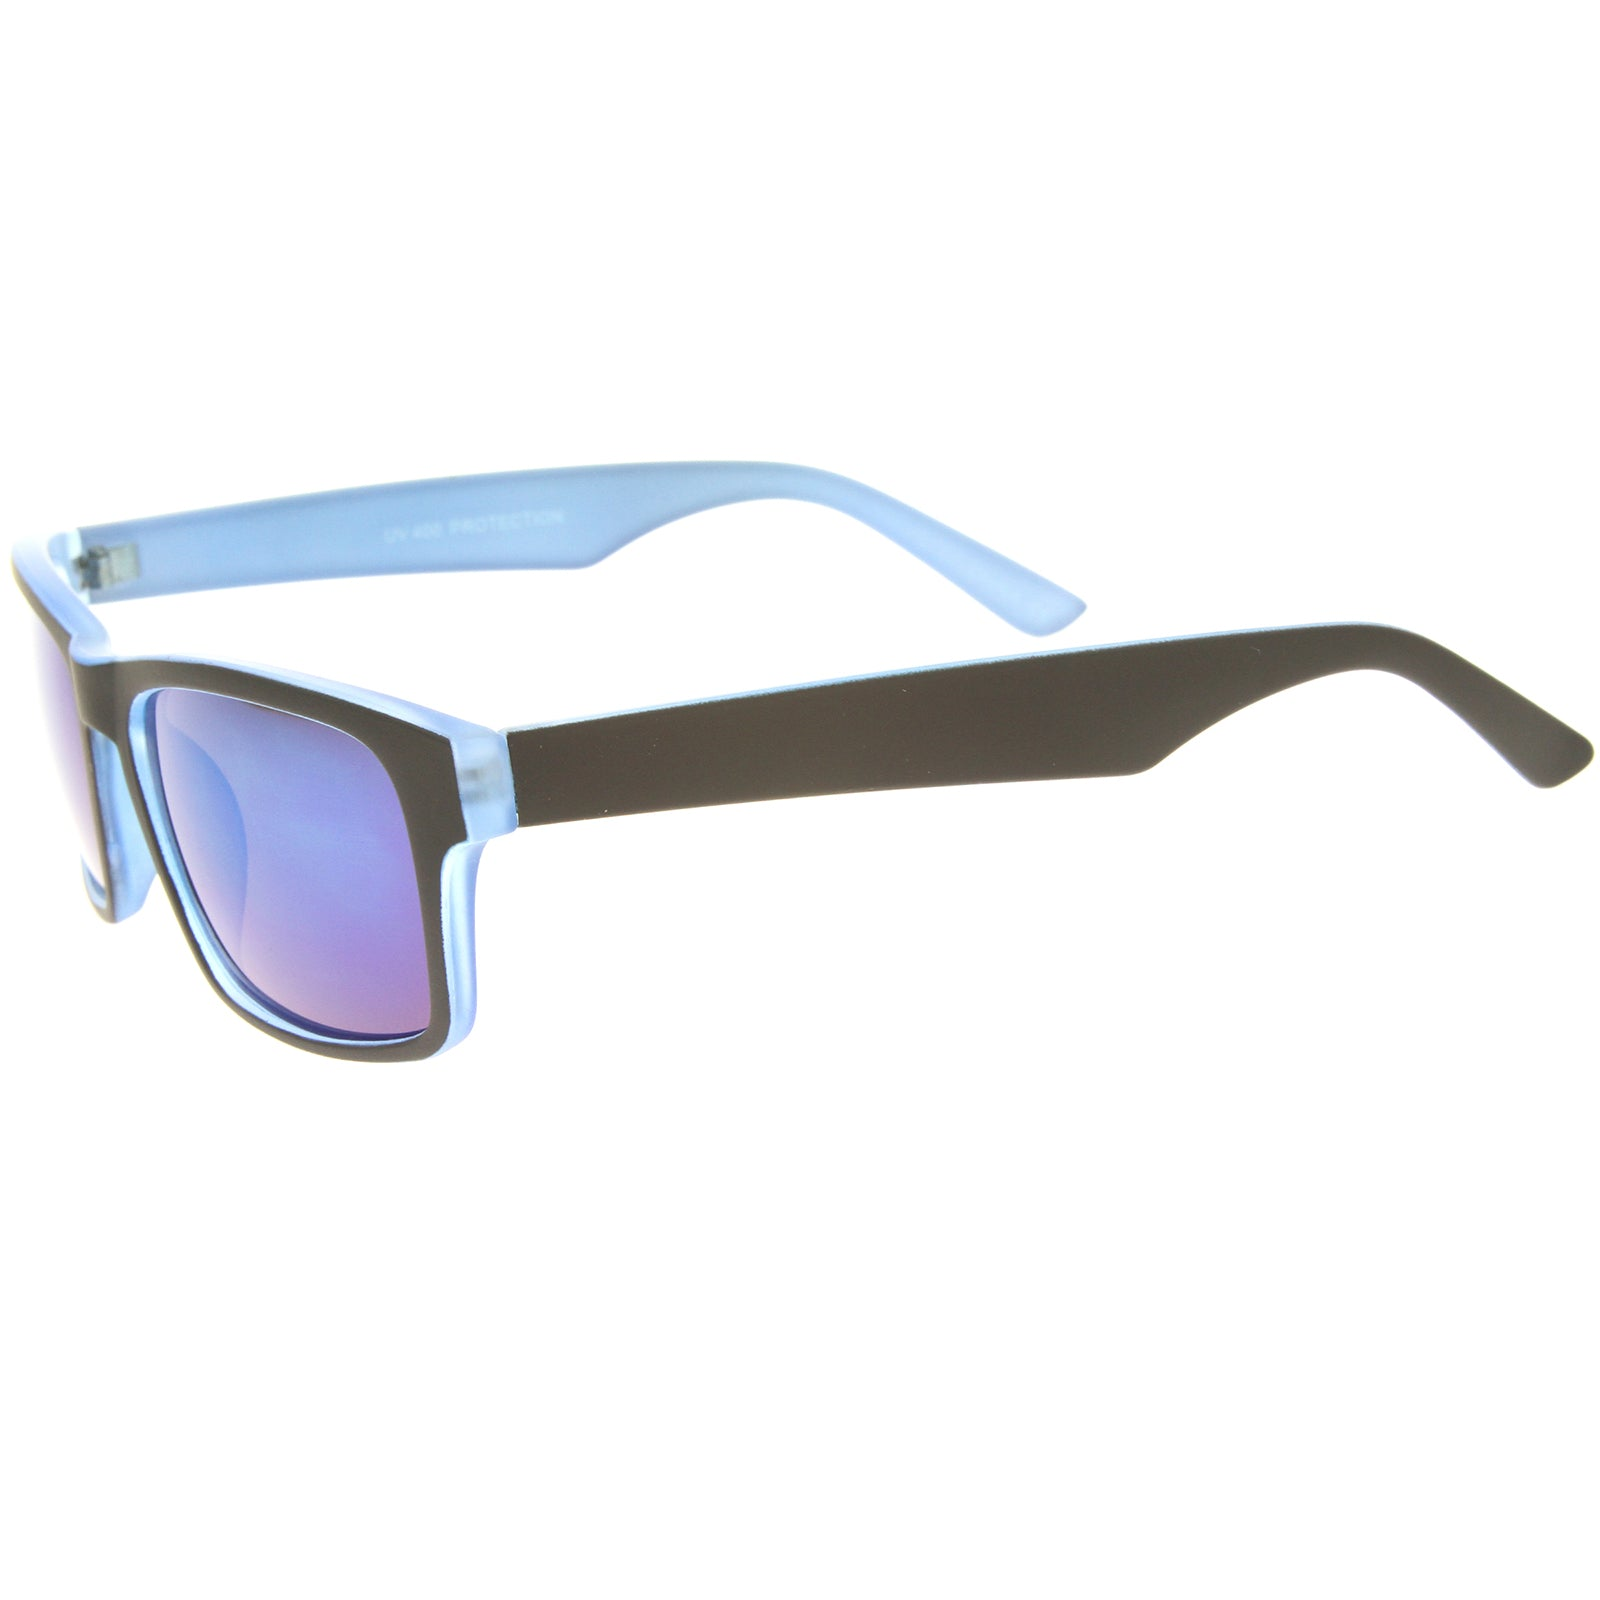 Mens Sport Sunglasses With UV400 Protected Mirrored Lens - sunglass.la - 7